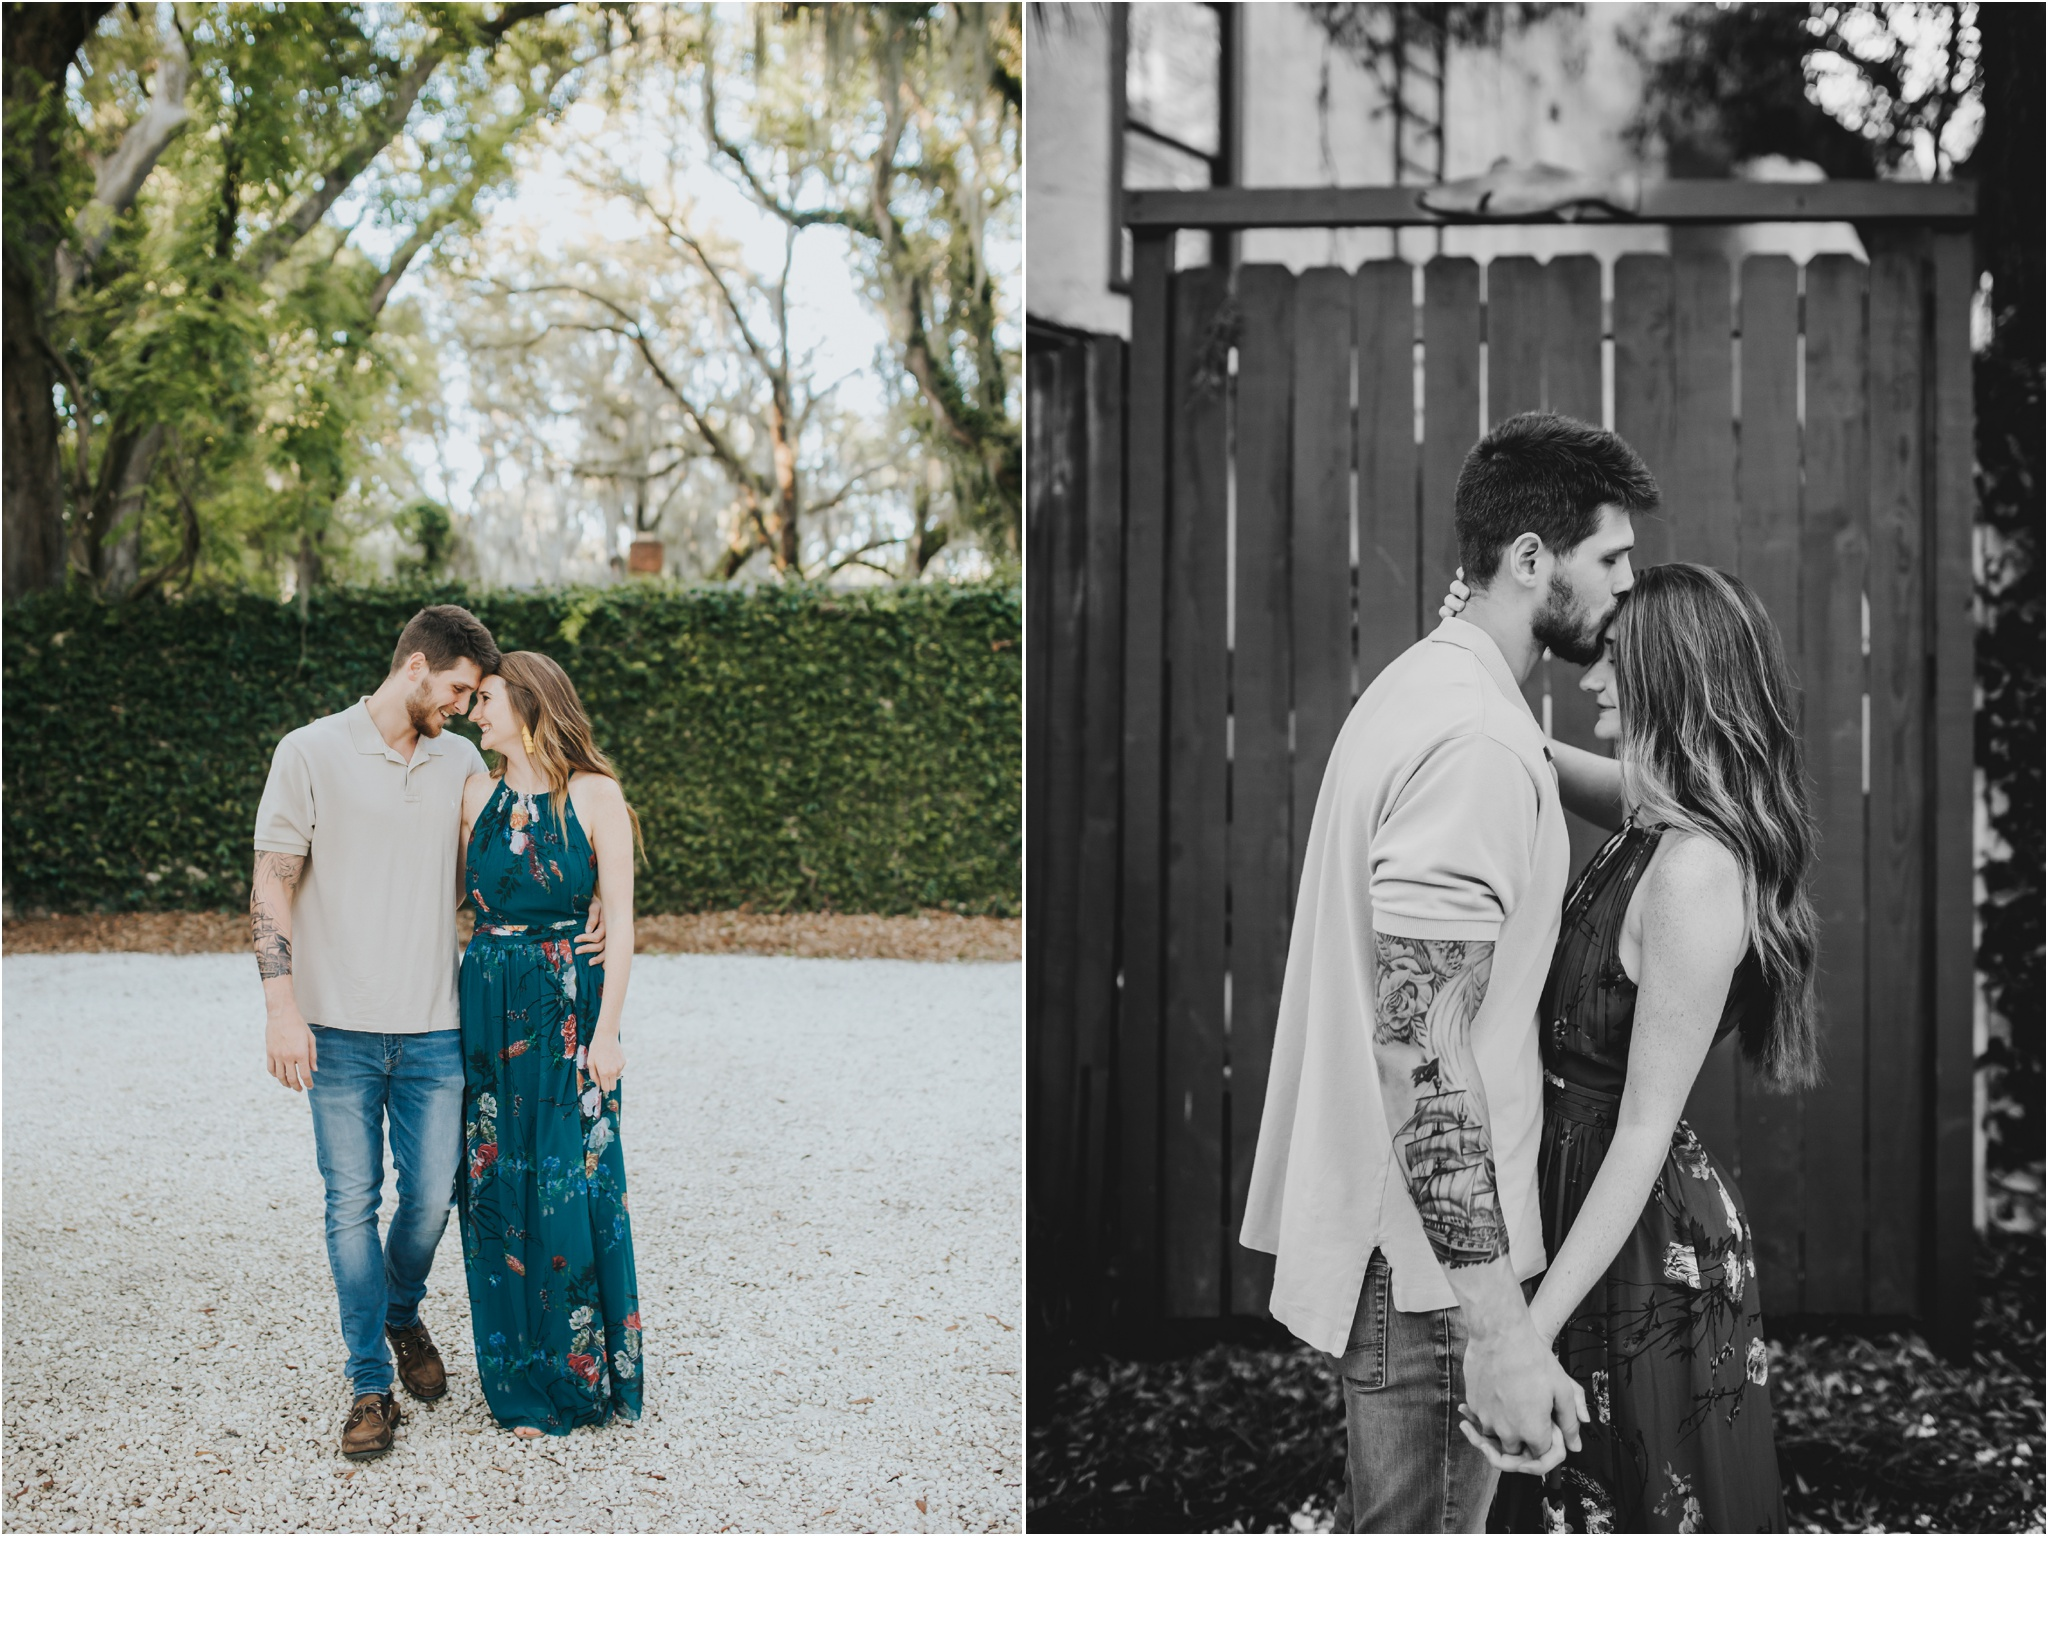 Rainey_Gregg_Photography_St._Simons_Island_Georgia_California_Wedding_Portrait_Photography_1791.jpg